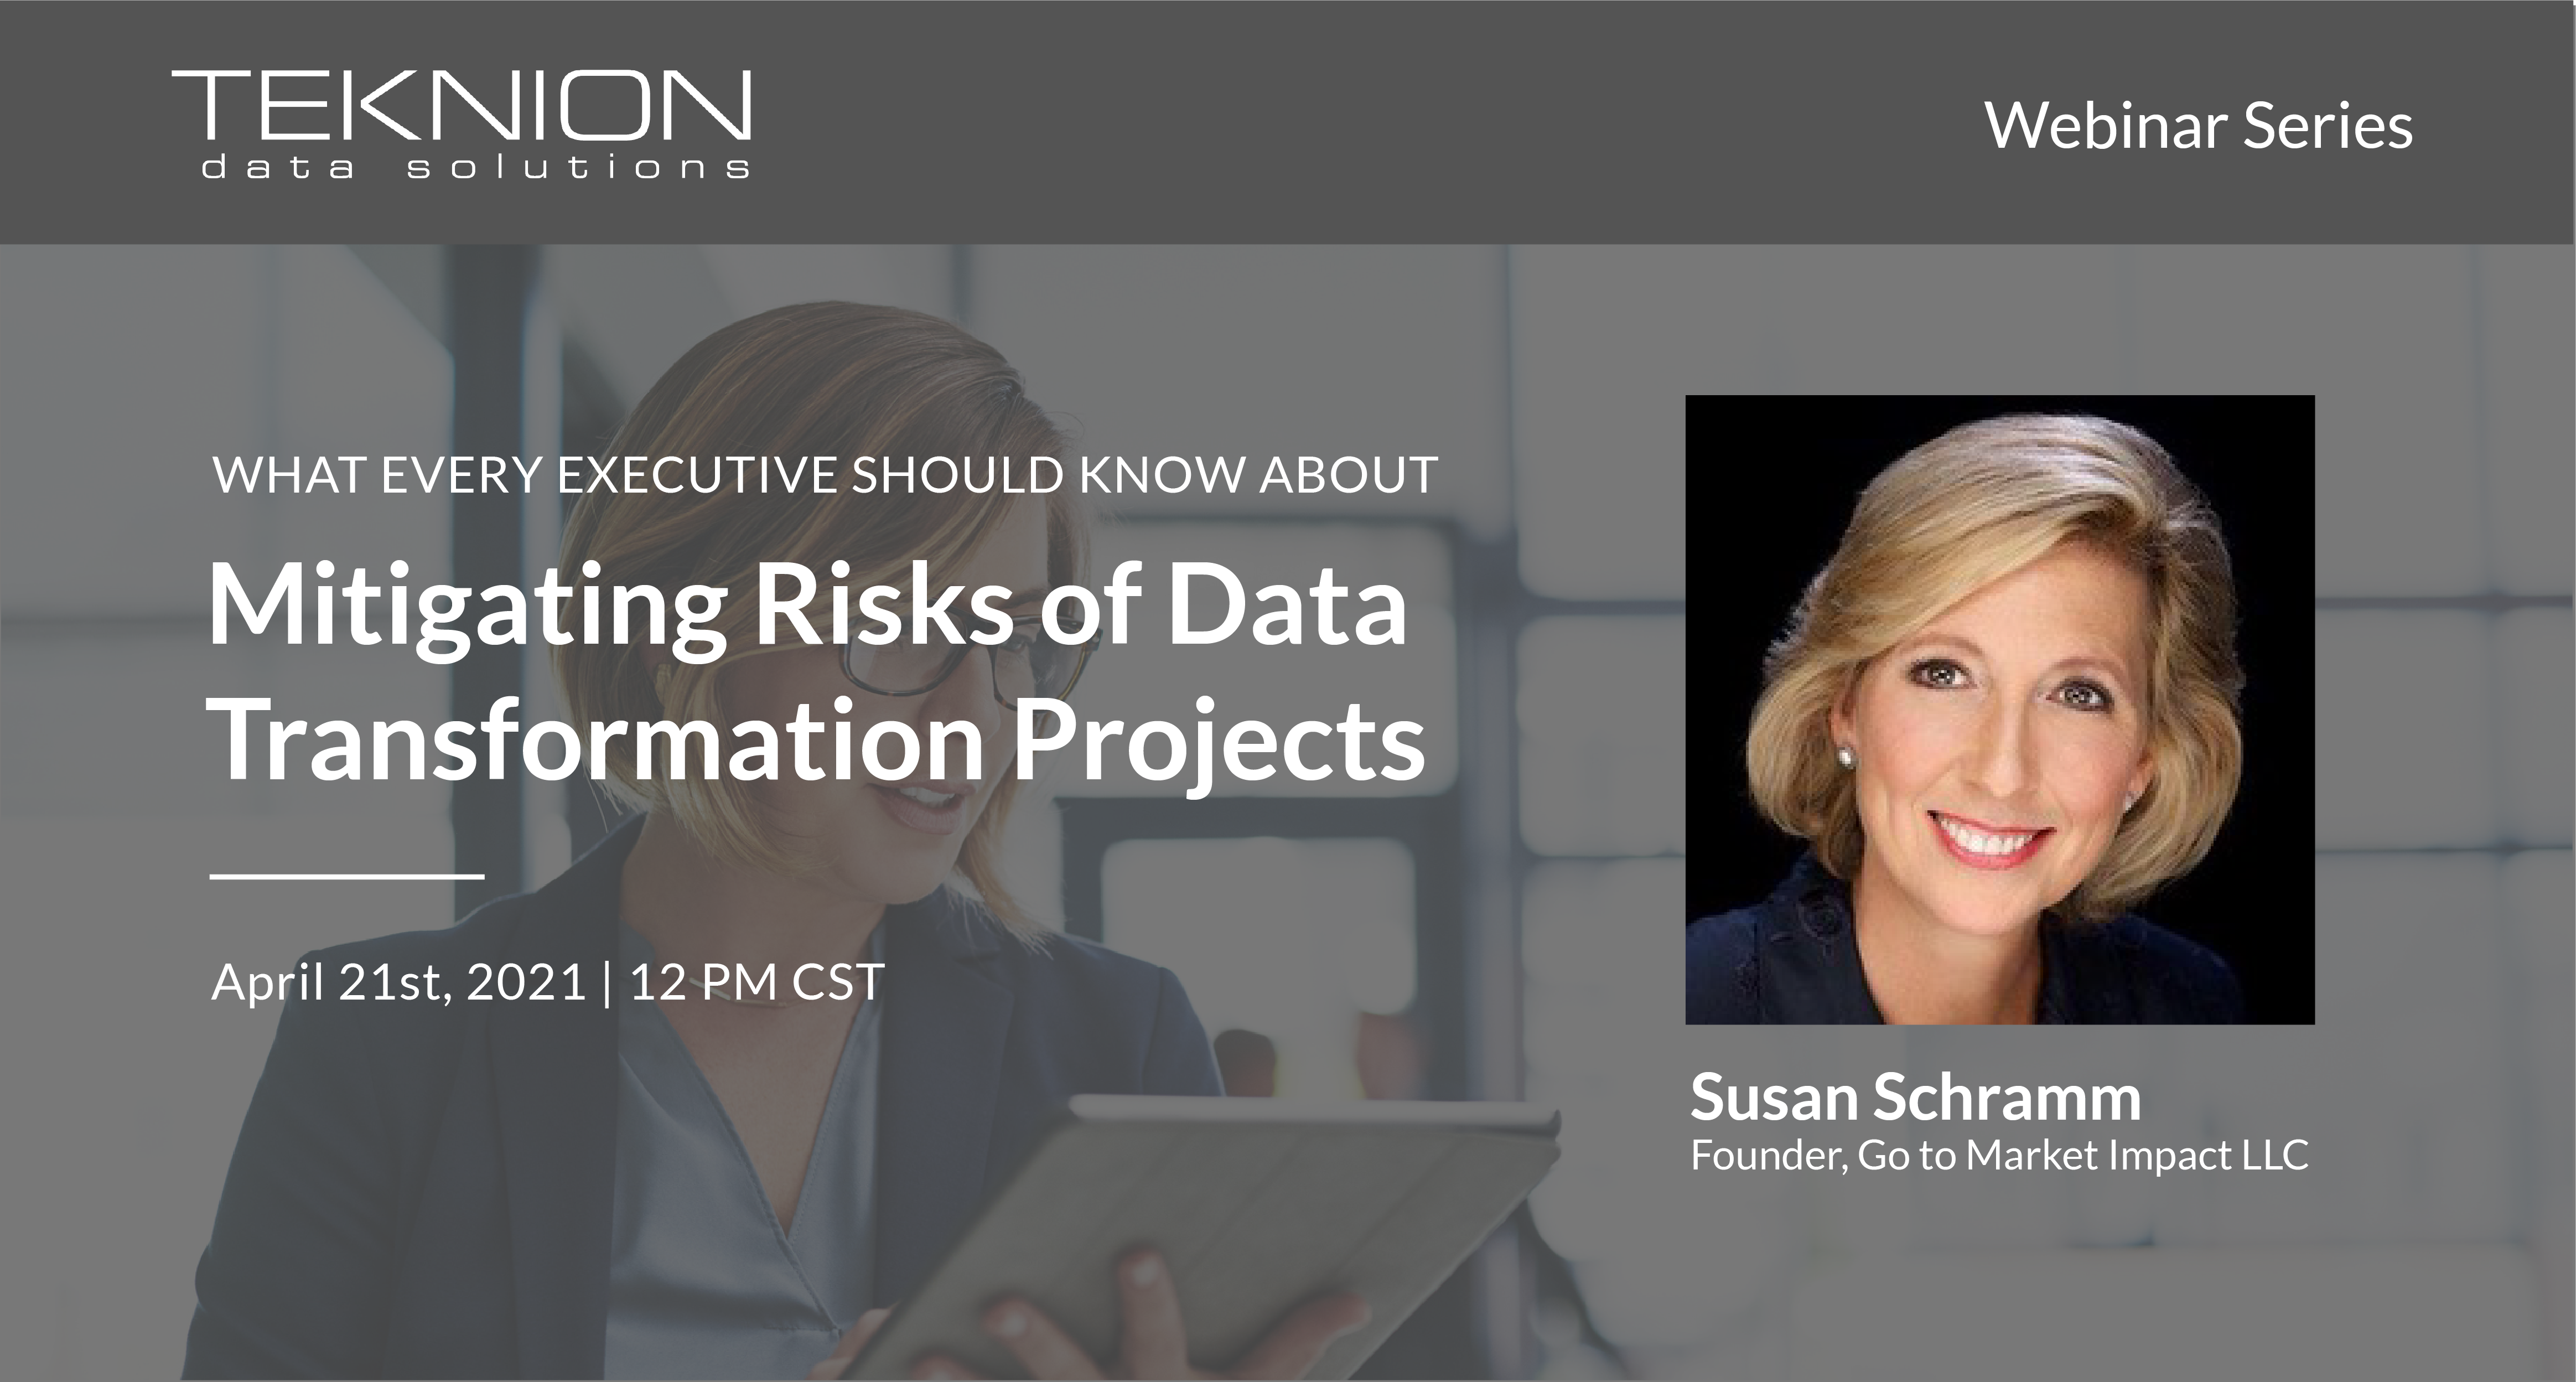 What Every Executive Should Know About Mitigating Risks of Data Transformation Projects v3